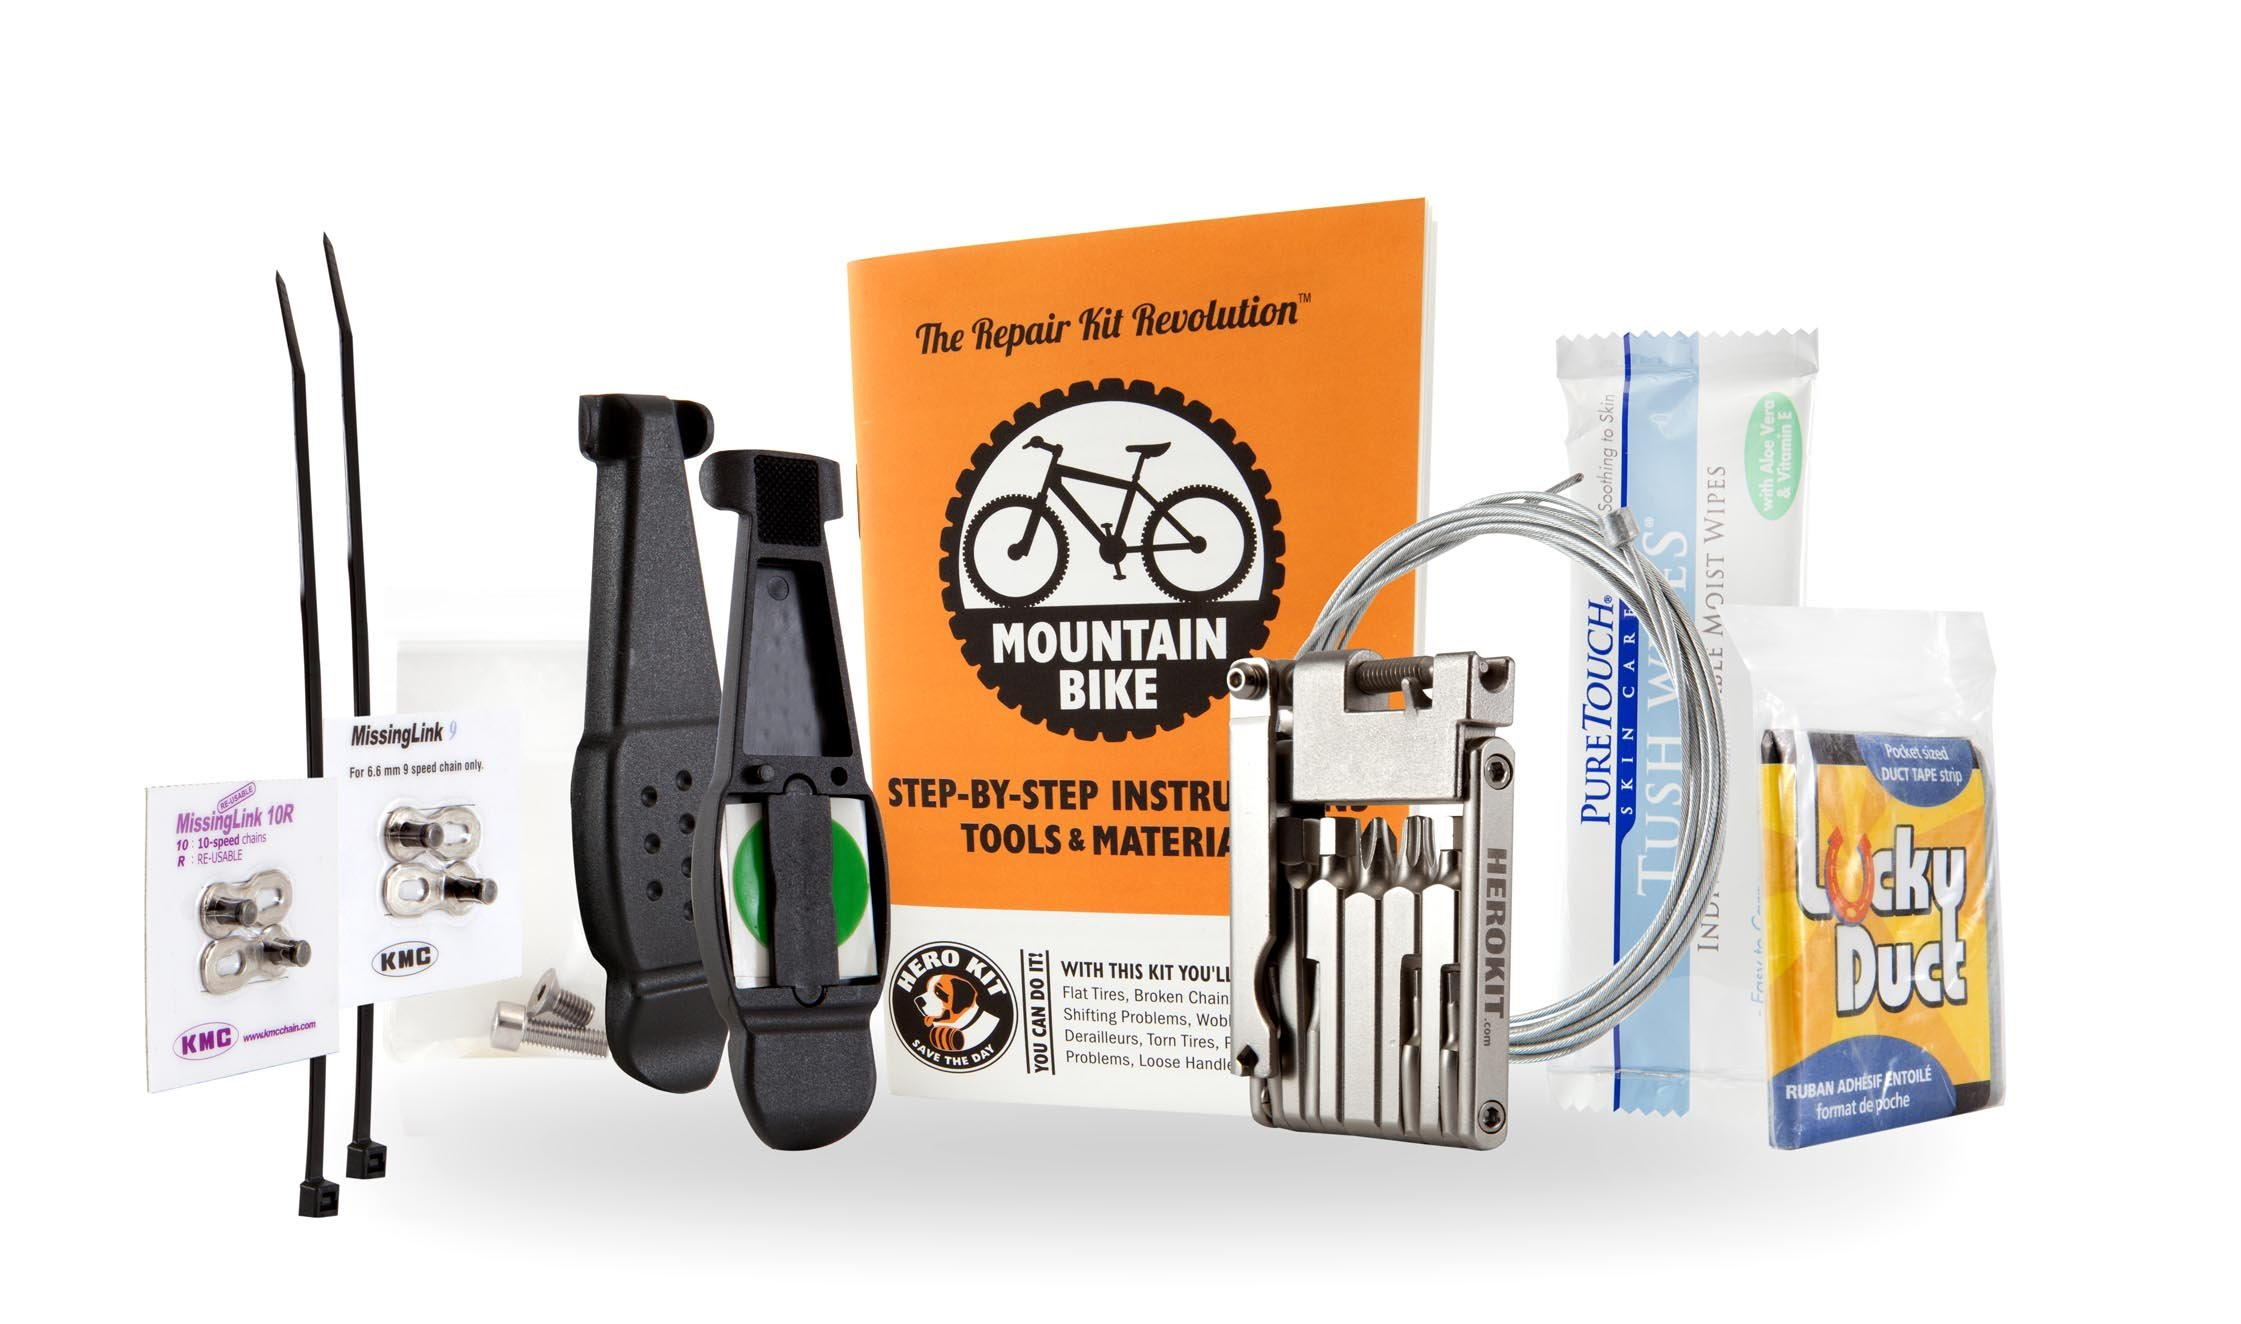 Mountain Bike Repair Kit with Multitool, Tire Levers, Chain Links, Cables, Bolts, Instructions. Hero Kit Perfect for Mountain Bikers of All Levels.